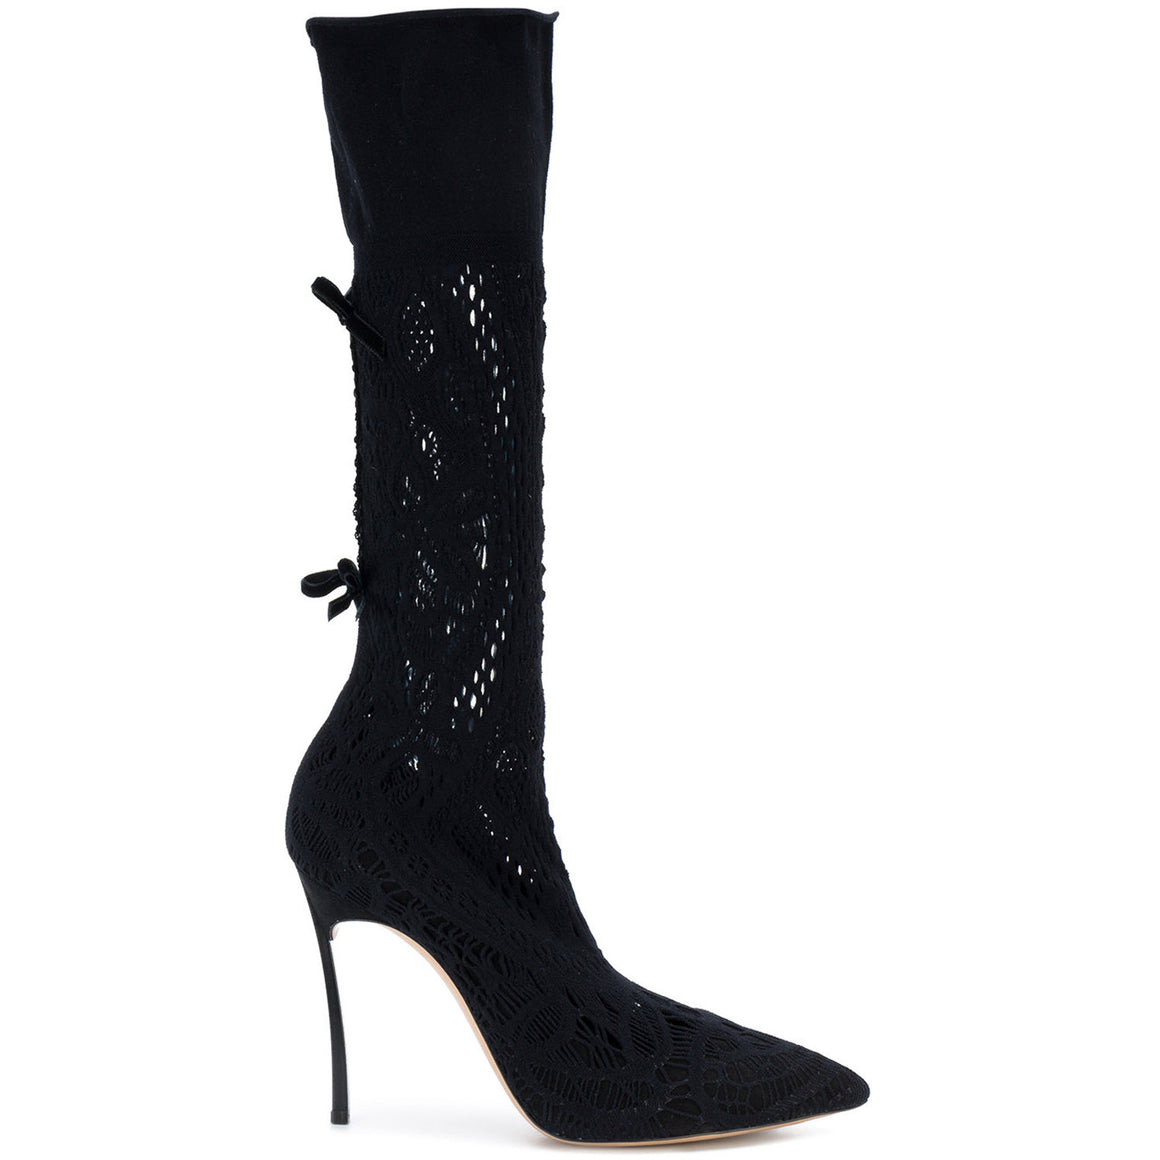 CASADEI Black Polacco Marylin Sock Heel Bootie